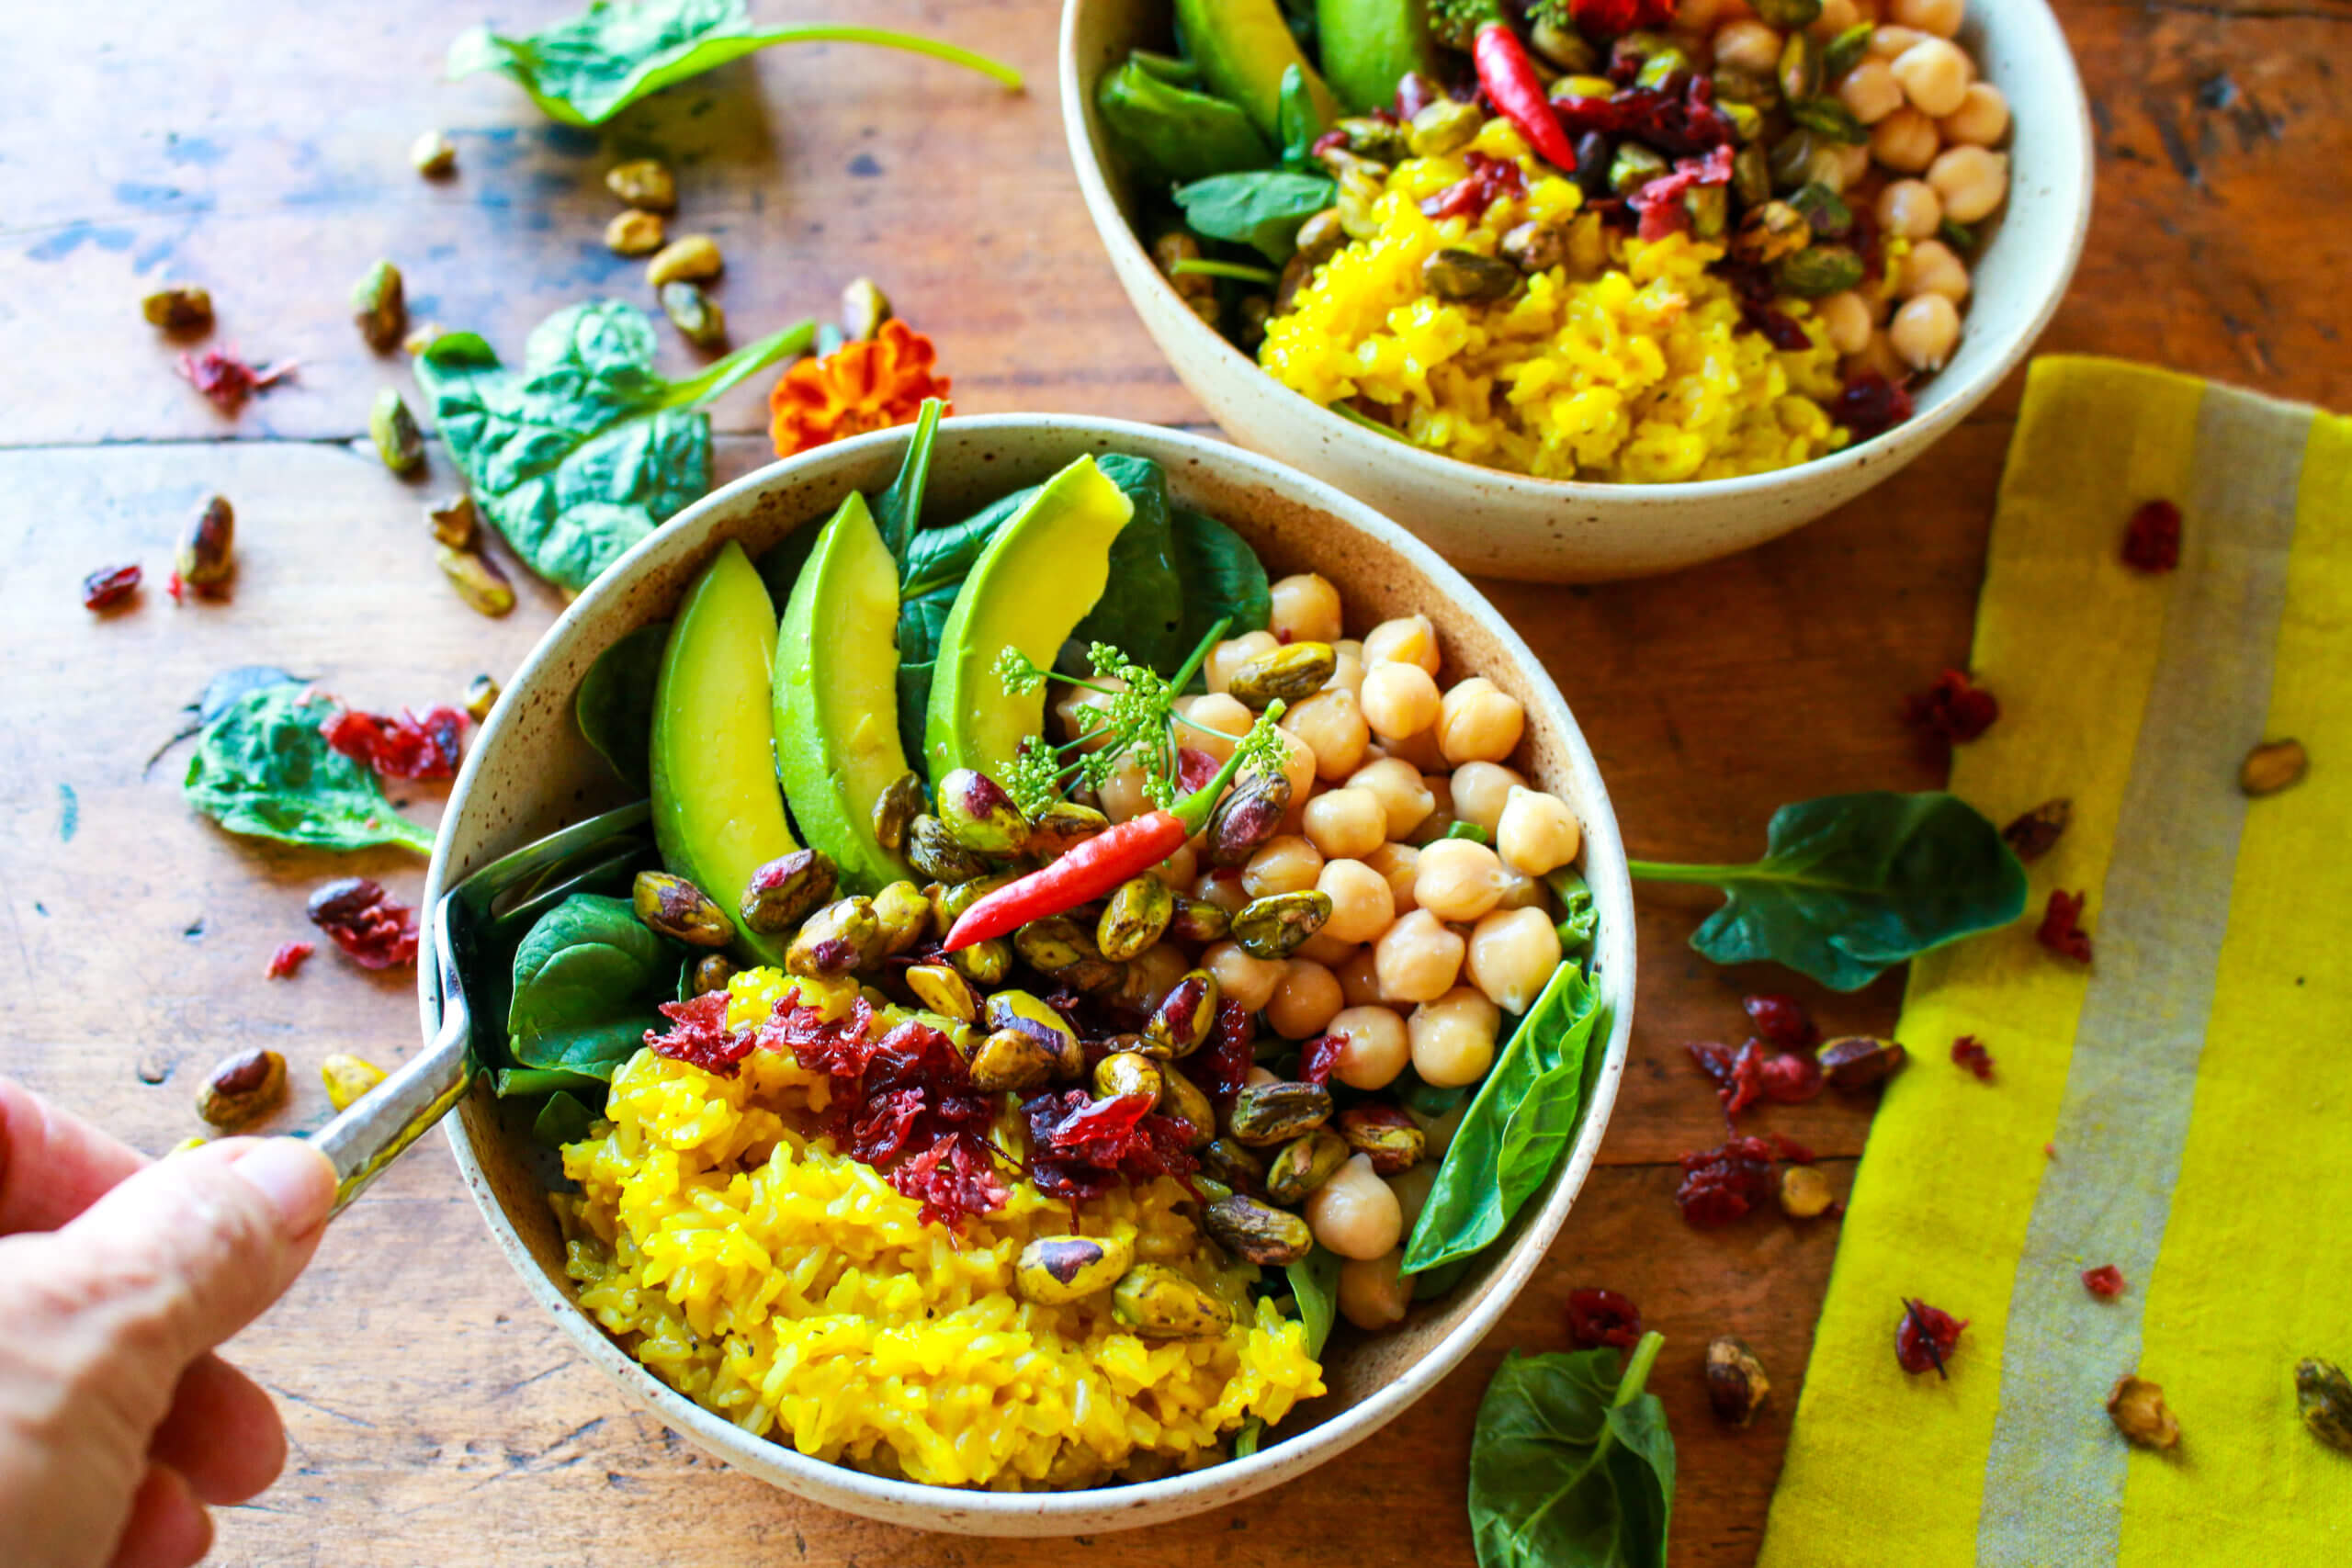 Top 7 Healthy Plant Based Bowls For 500 Calories Sharon Palmer The Plant Powered Dietitian